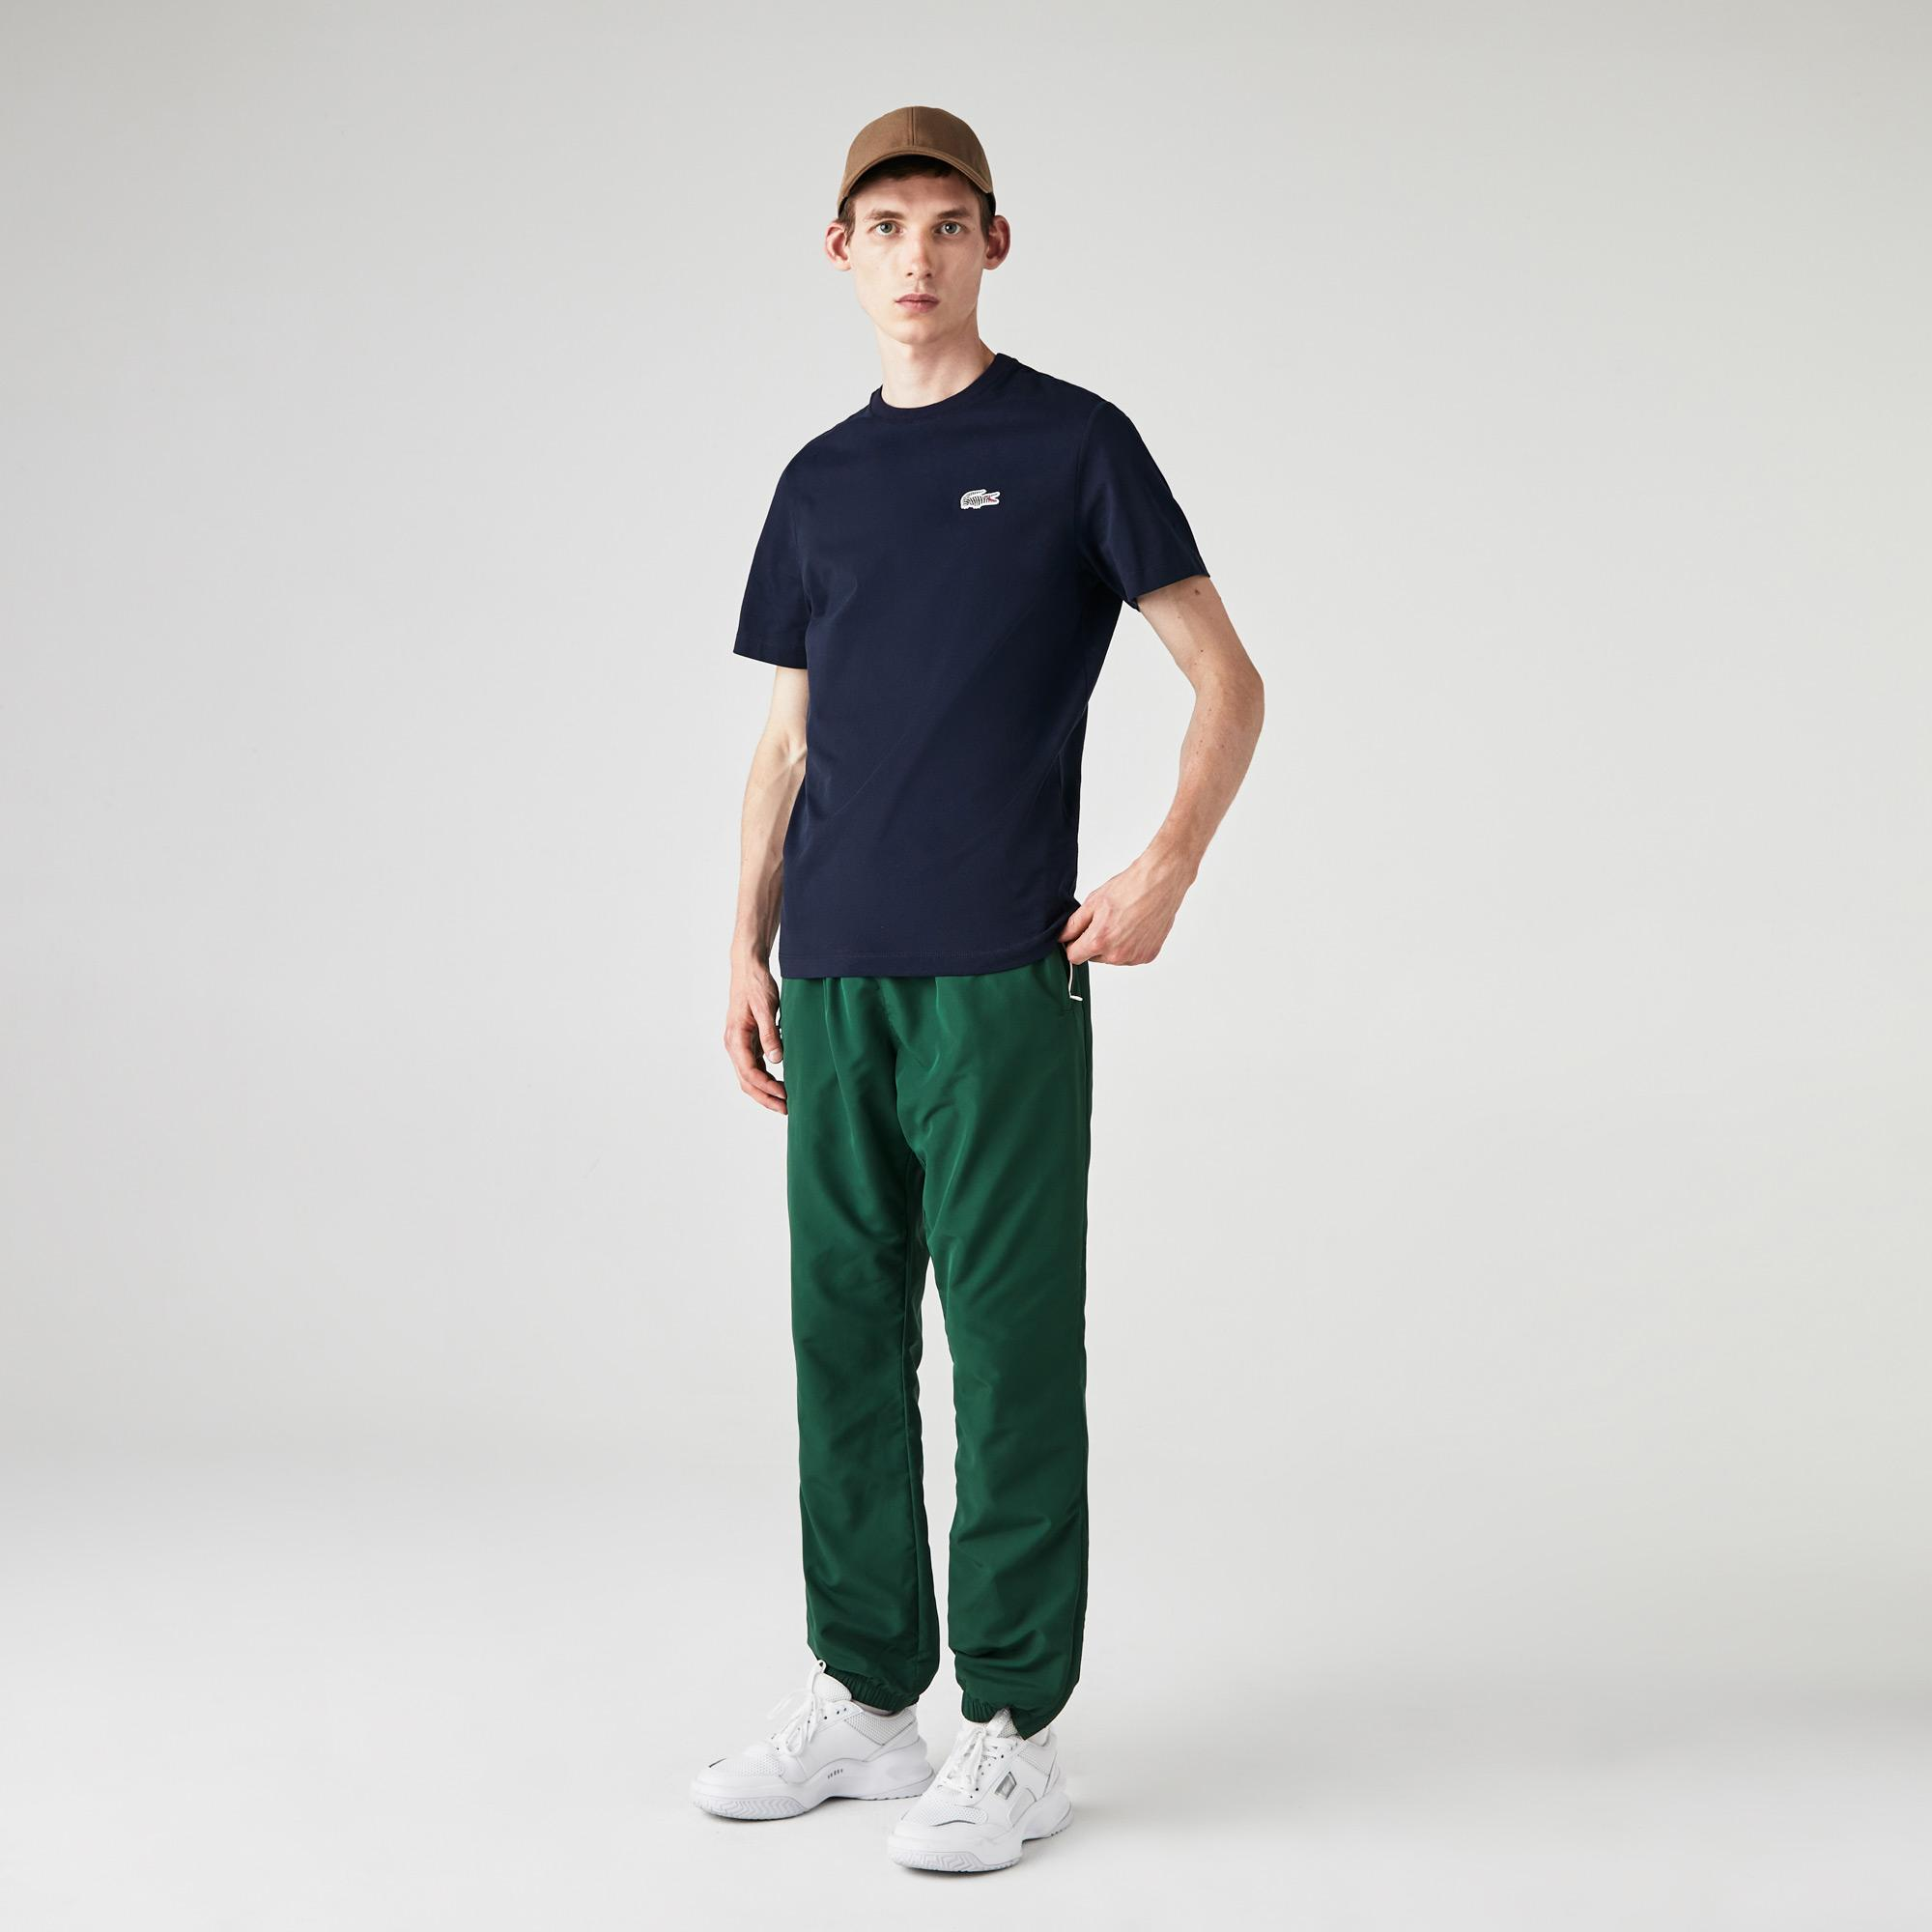 Lacoste Men's x National Geographic Organic Cotton T-shirt